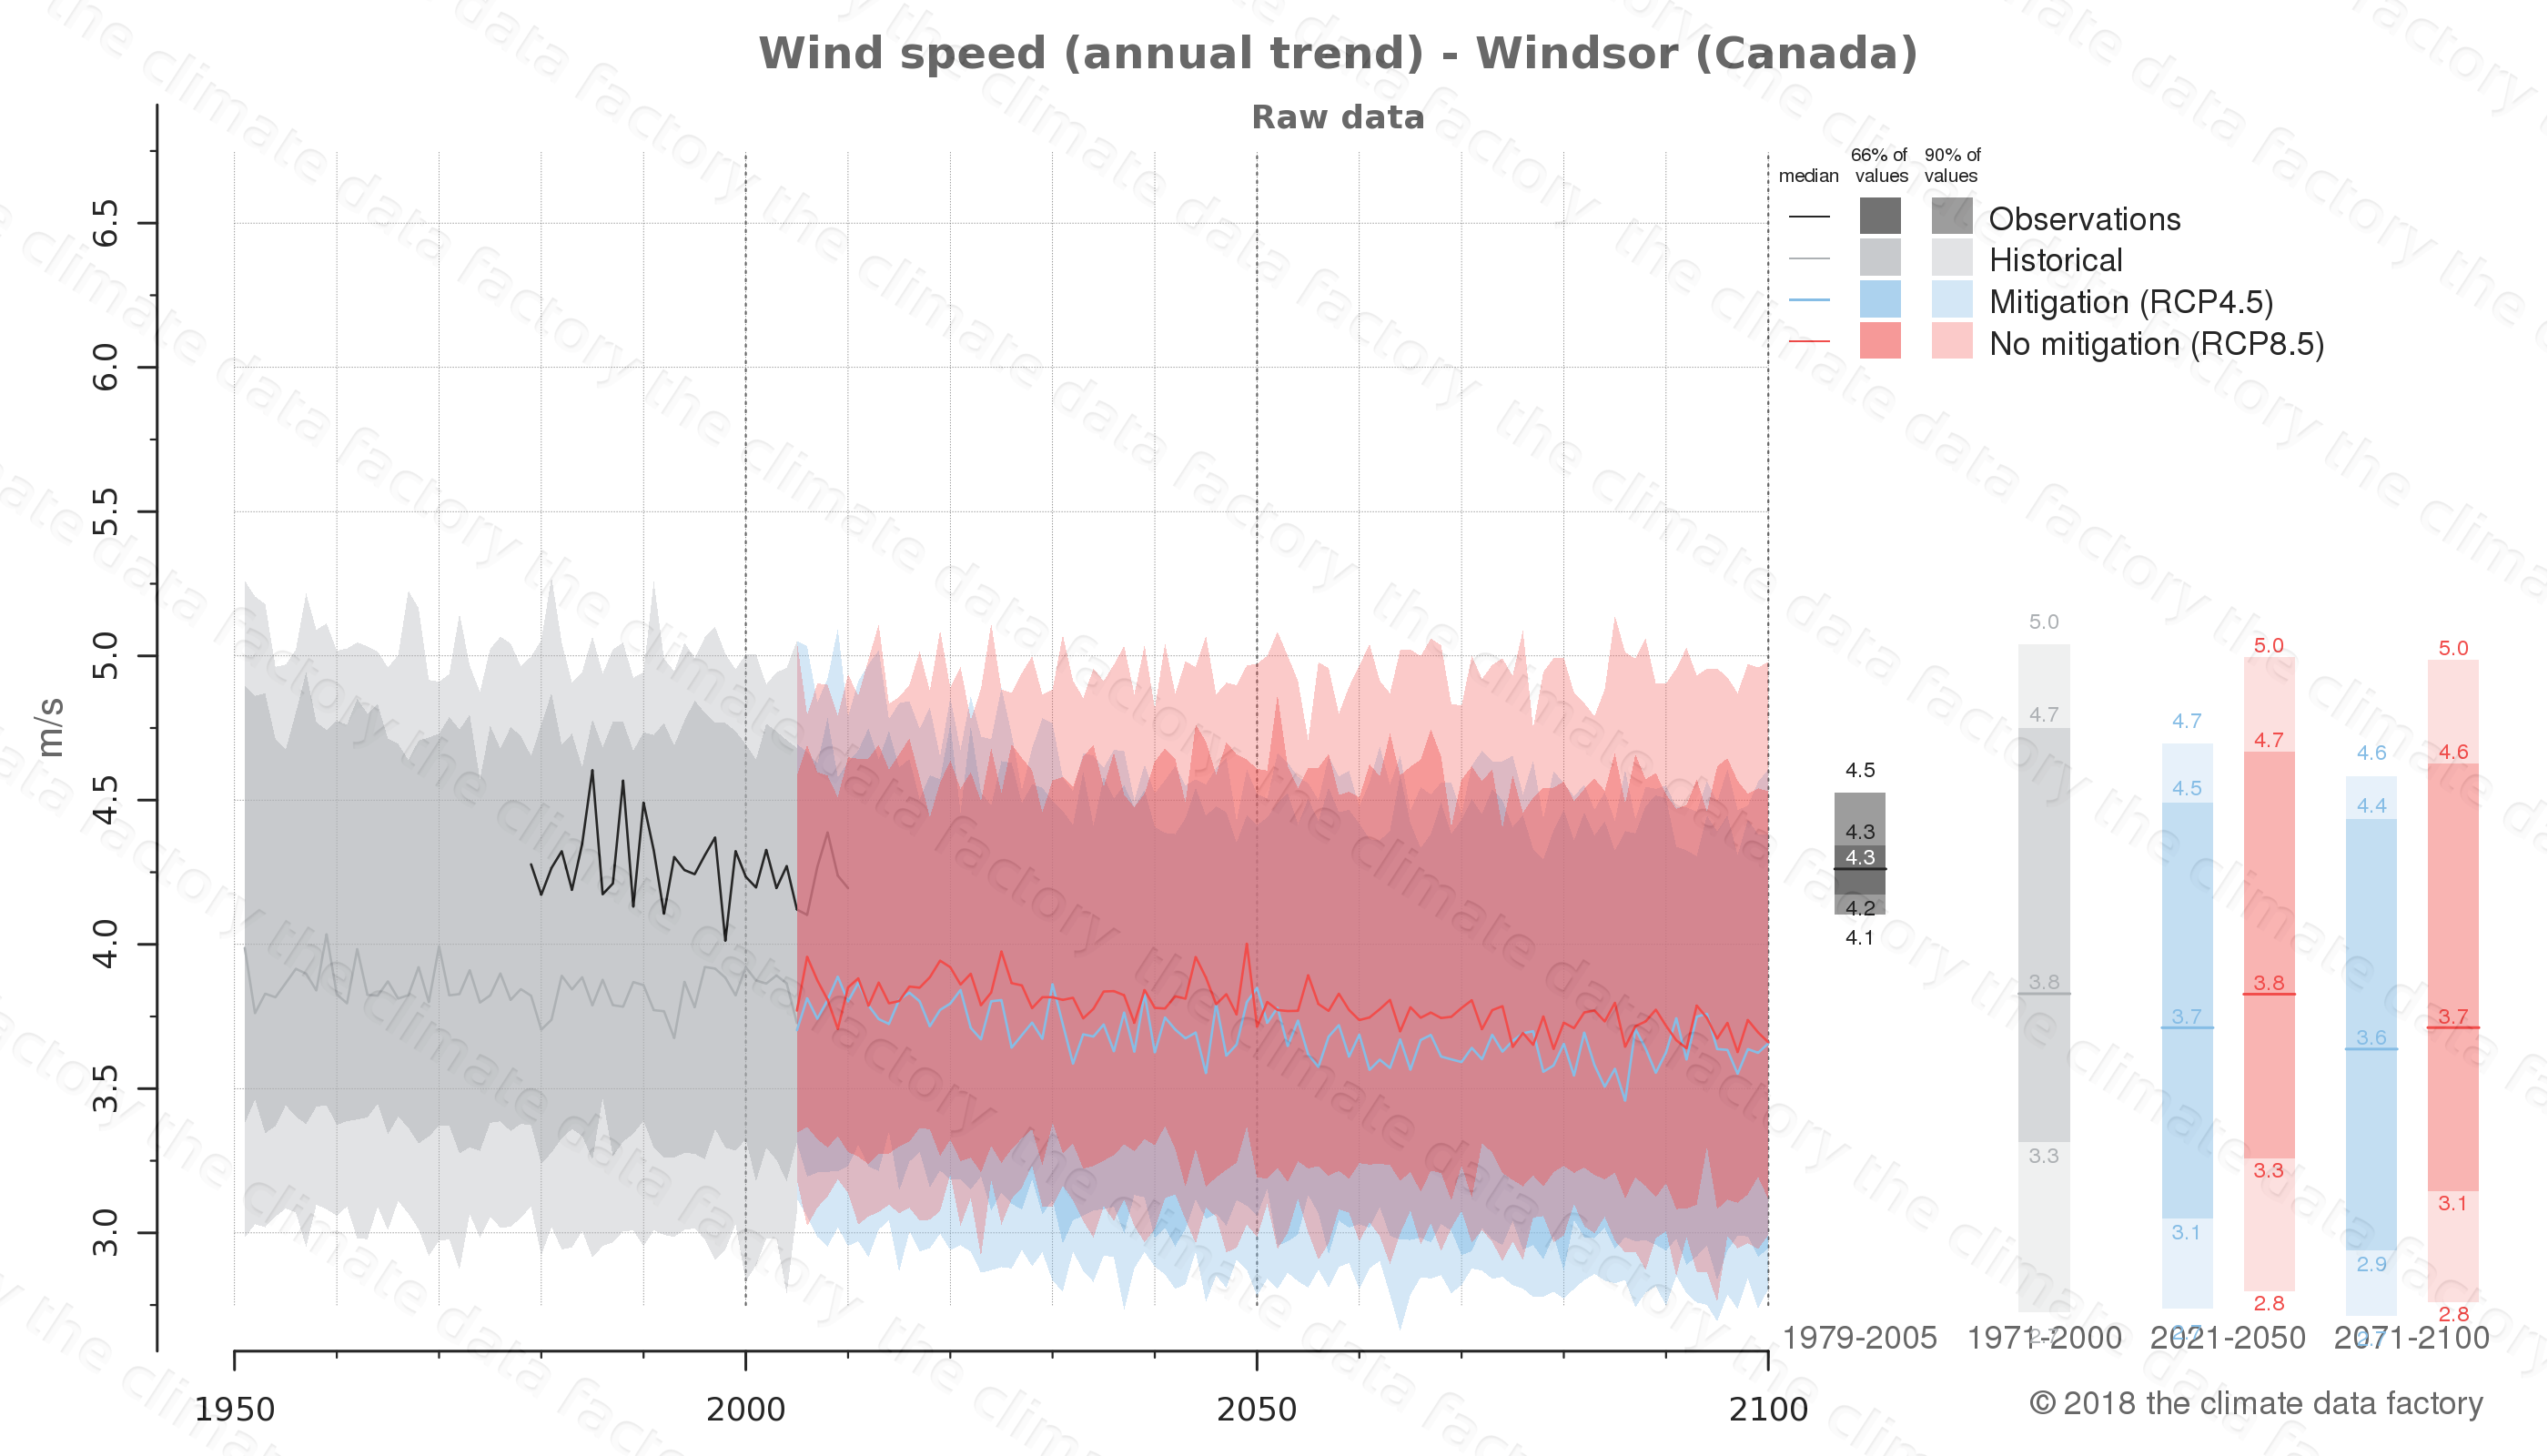 climate change data policy adaptation climate graph city data wind-speed windsor canada